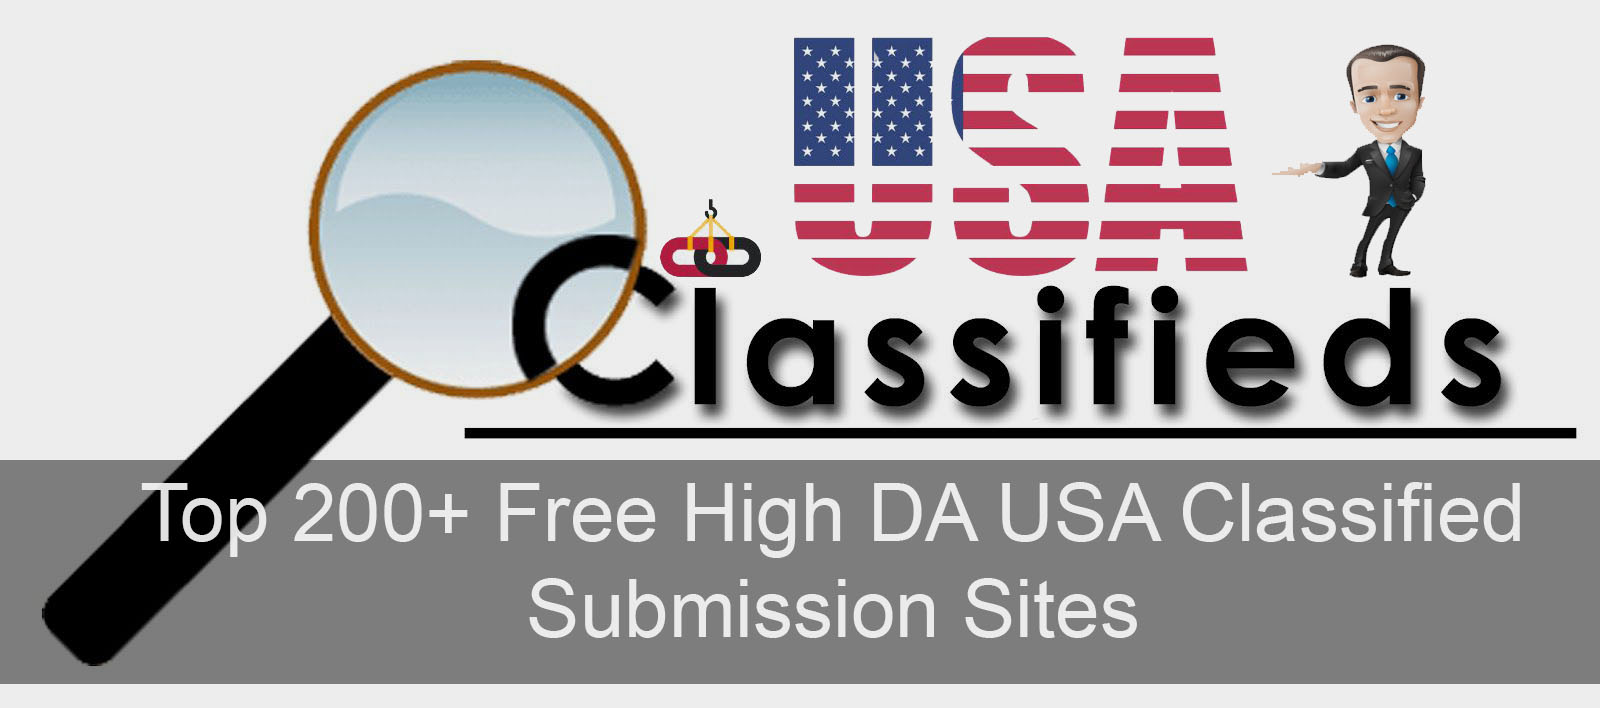 Top 200+ Free High DA USA Classified Submission Sites List